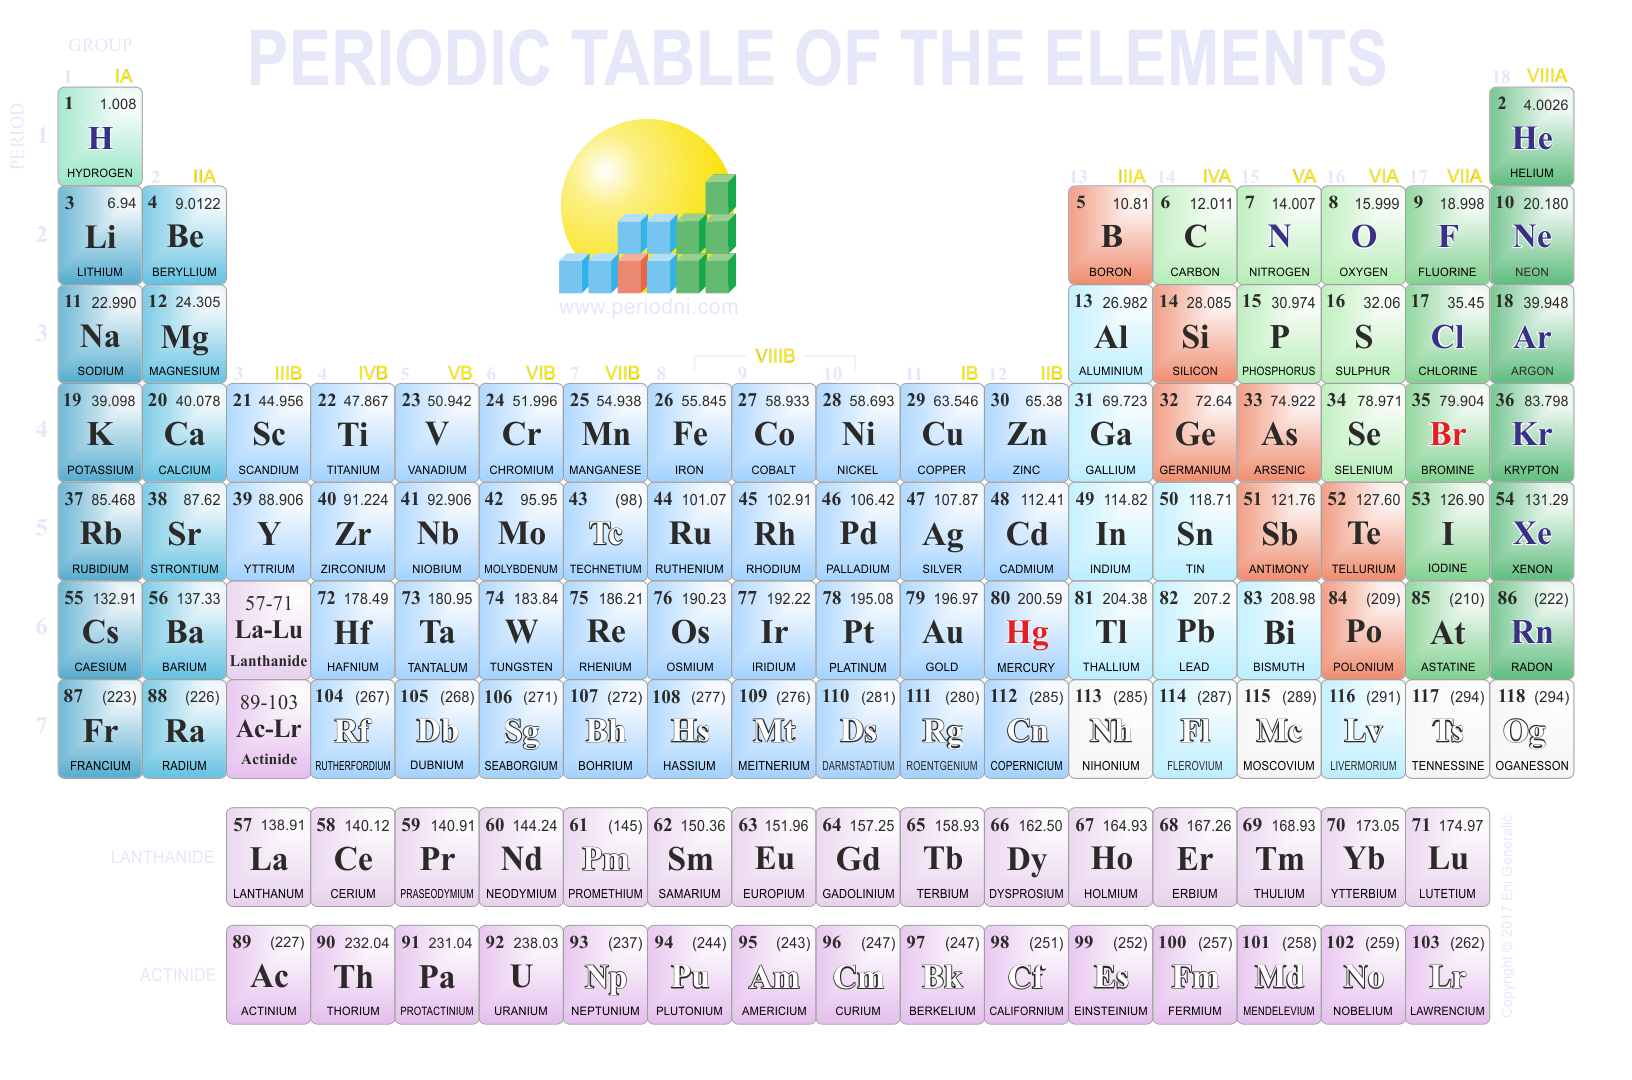 Direct download link: https://www.periodni.com/gallery/periodic_table-1632x1080-dark_background.png